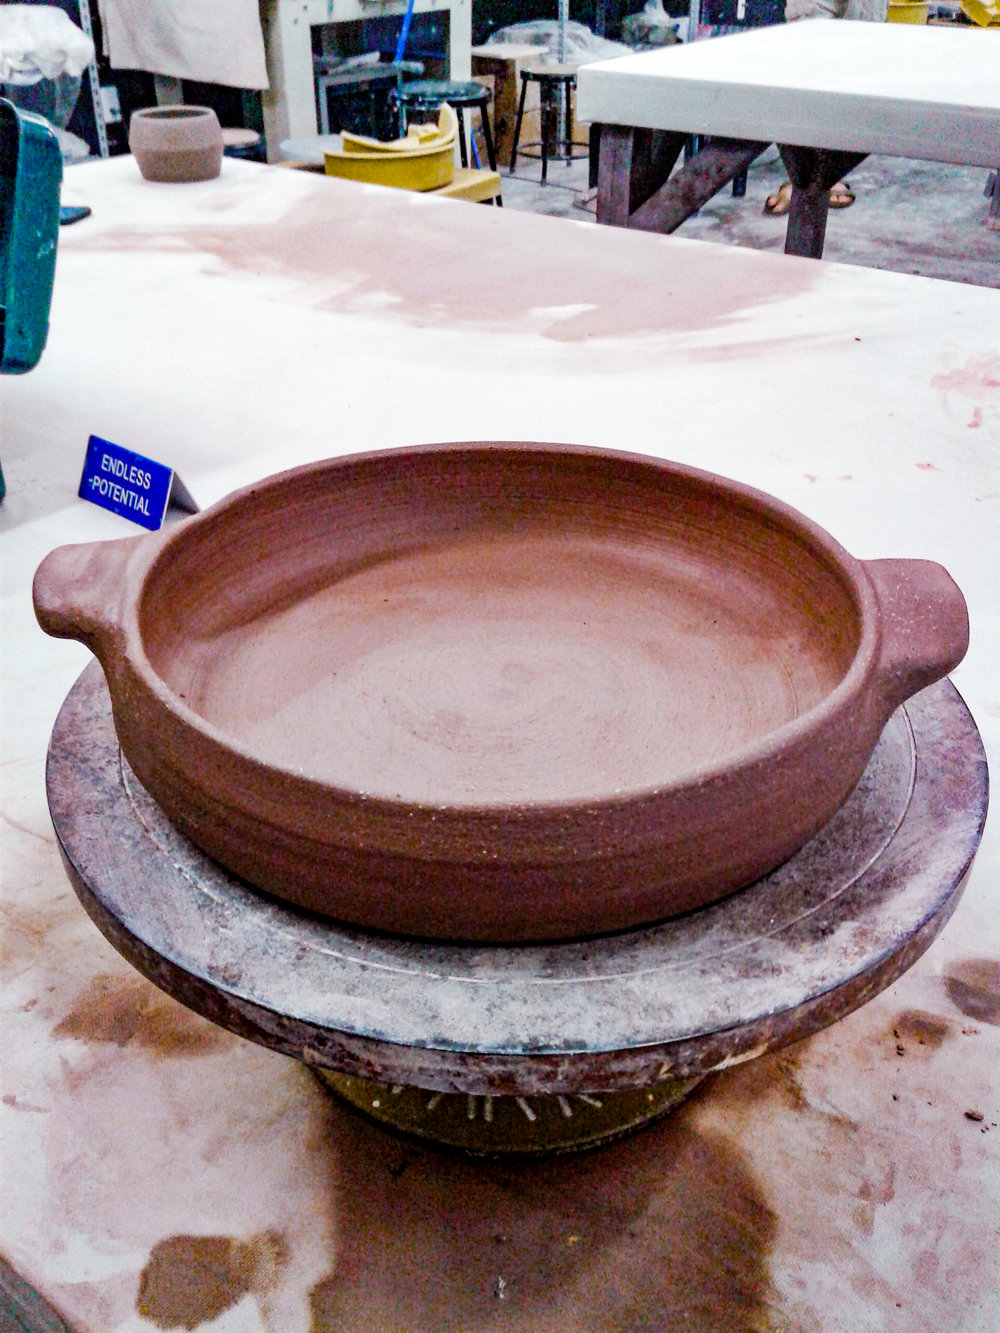 Red Clay Casserole Dish with handles made by Little Clay Studio, perfect for dishes, soups, restaurants, interior design, home, artistic kitchenware, pottery wheel thrown in Austin, Texas.